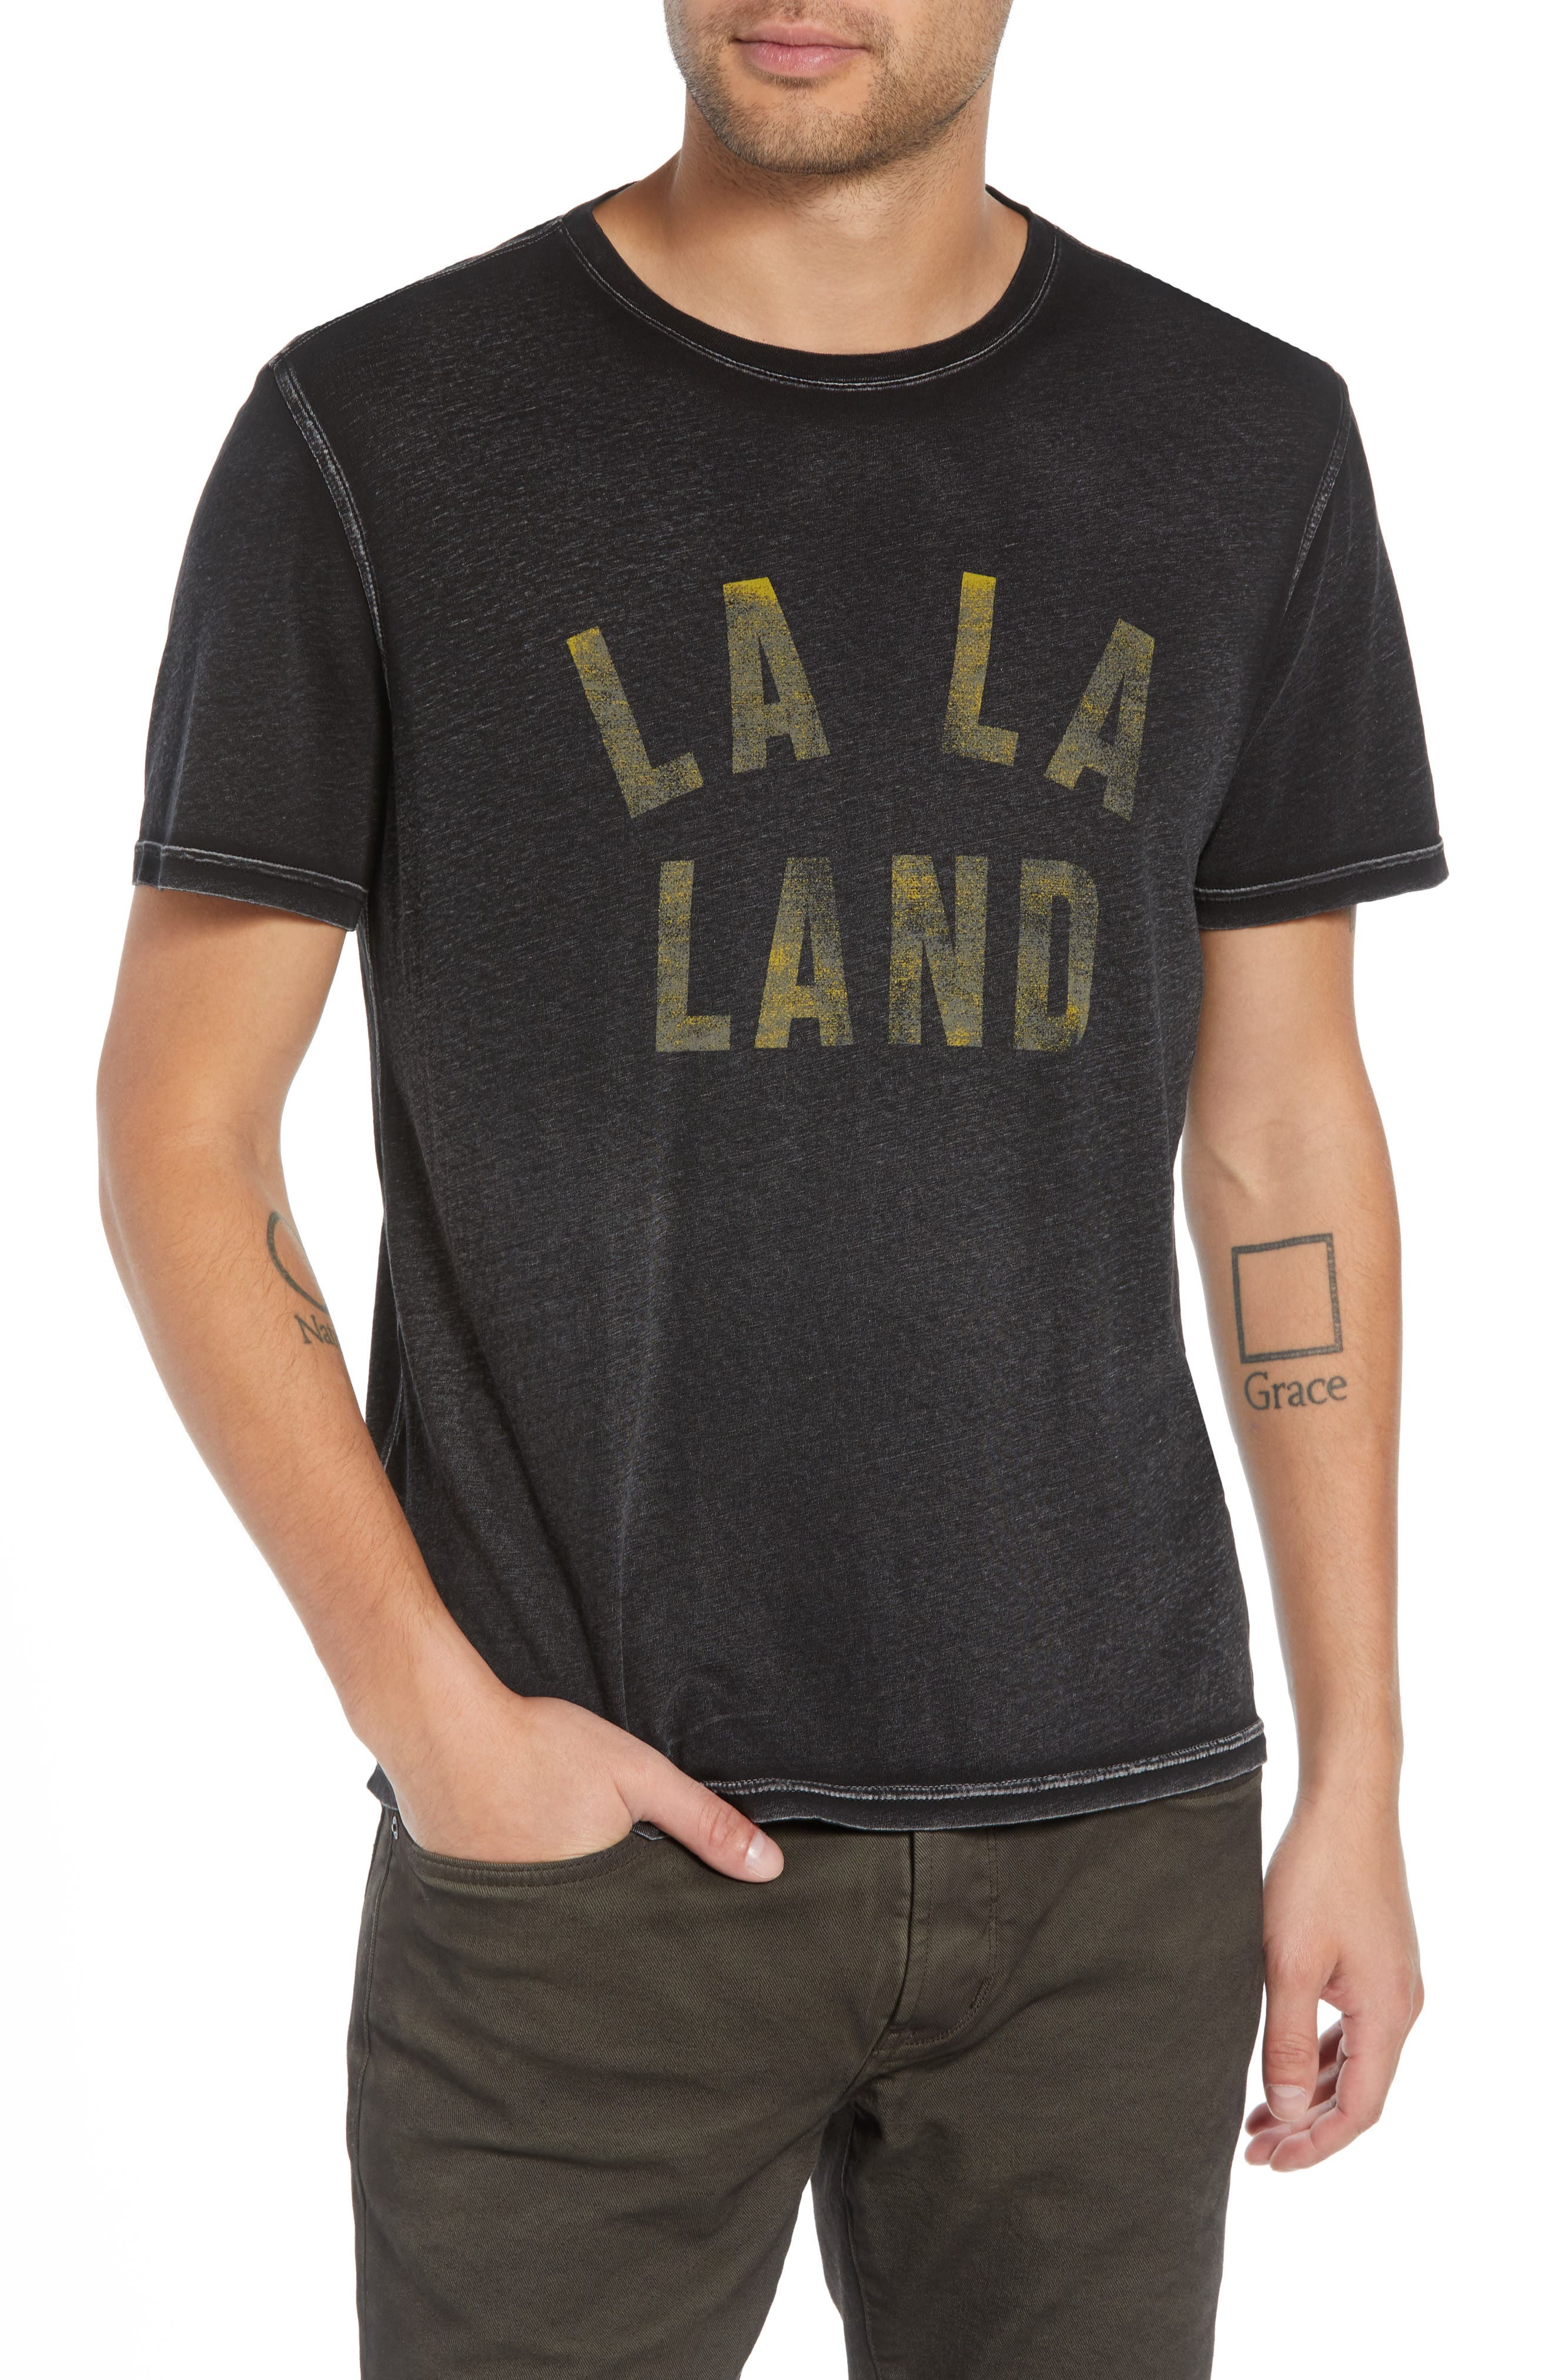 La La Land T-Shirt,                             Main thumbnail 1, color,                             020